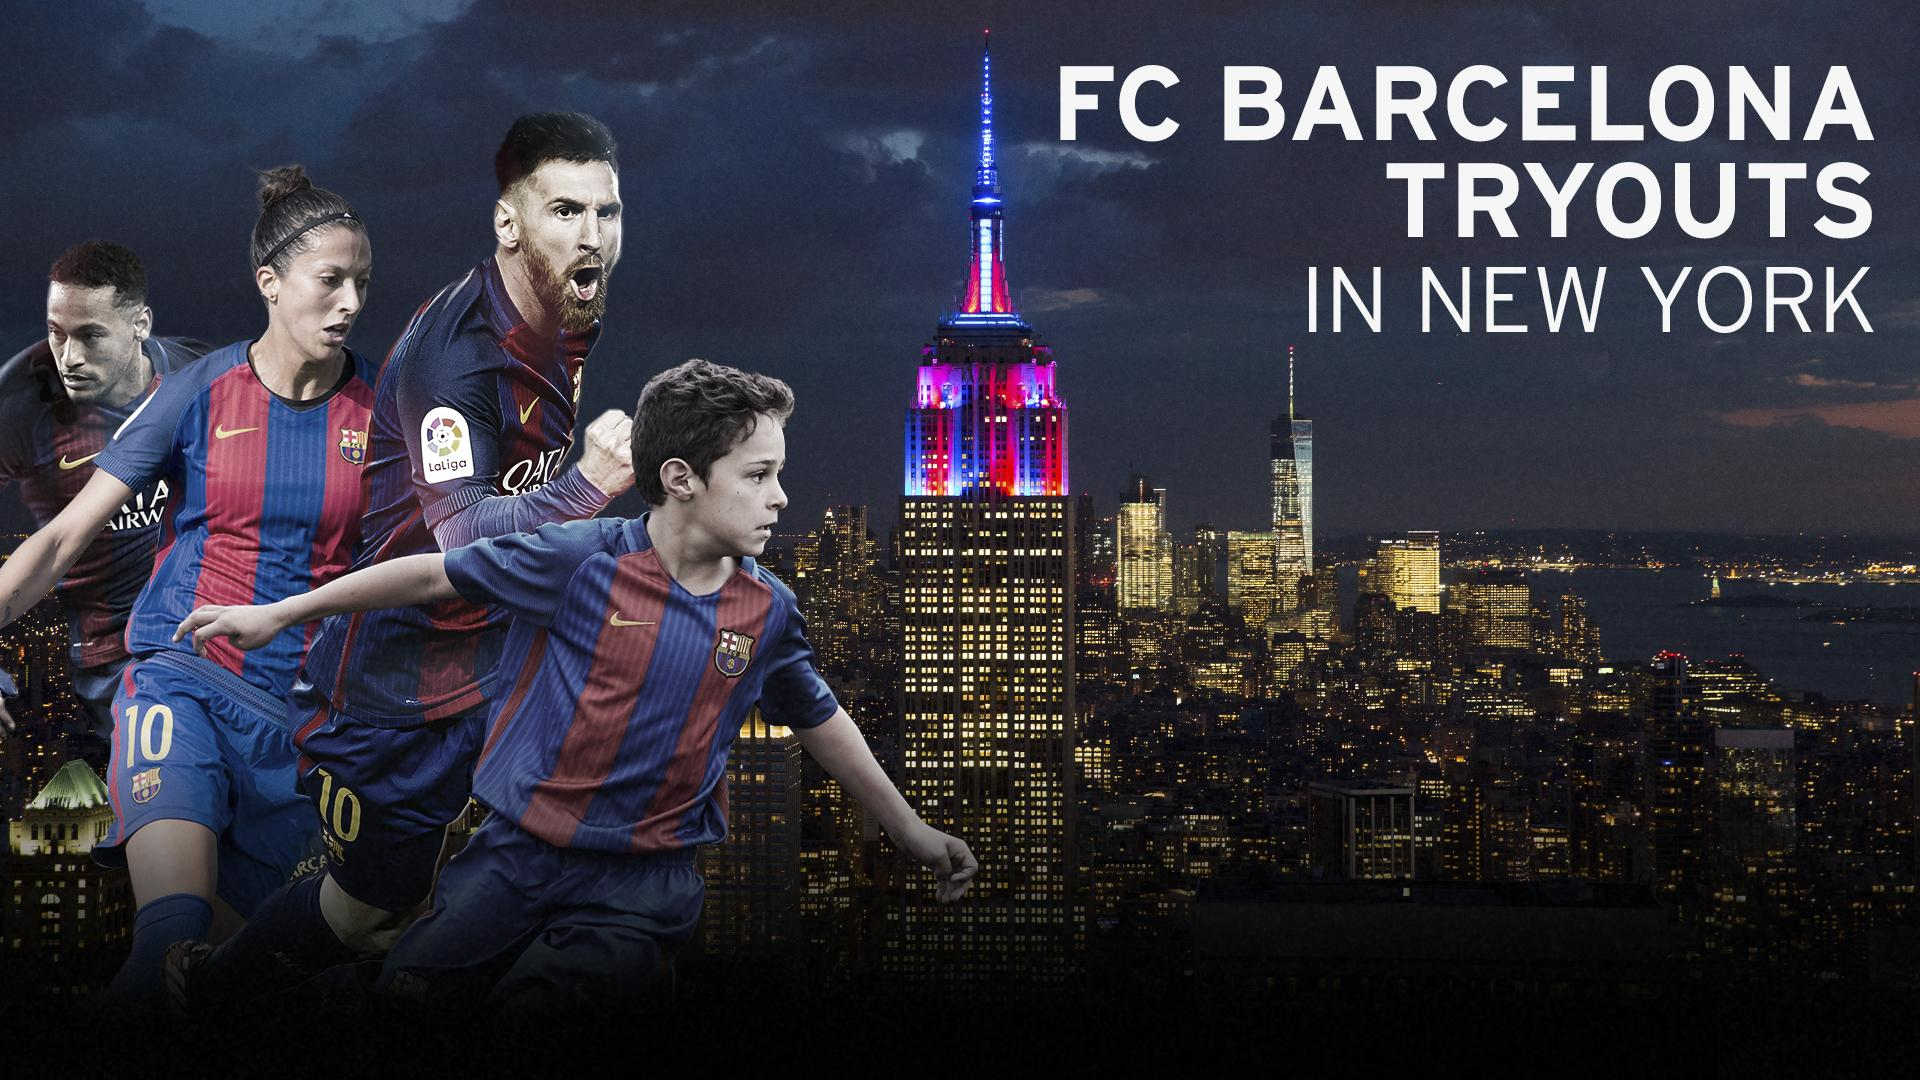 FC Barcelona hosts tryouts for its youth academy in New York